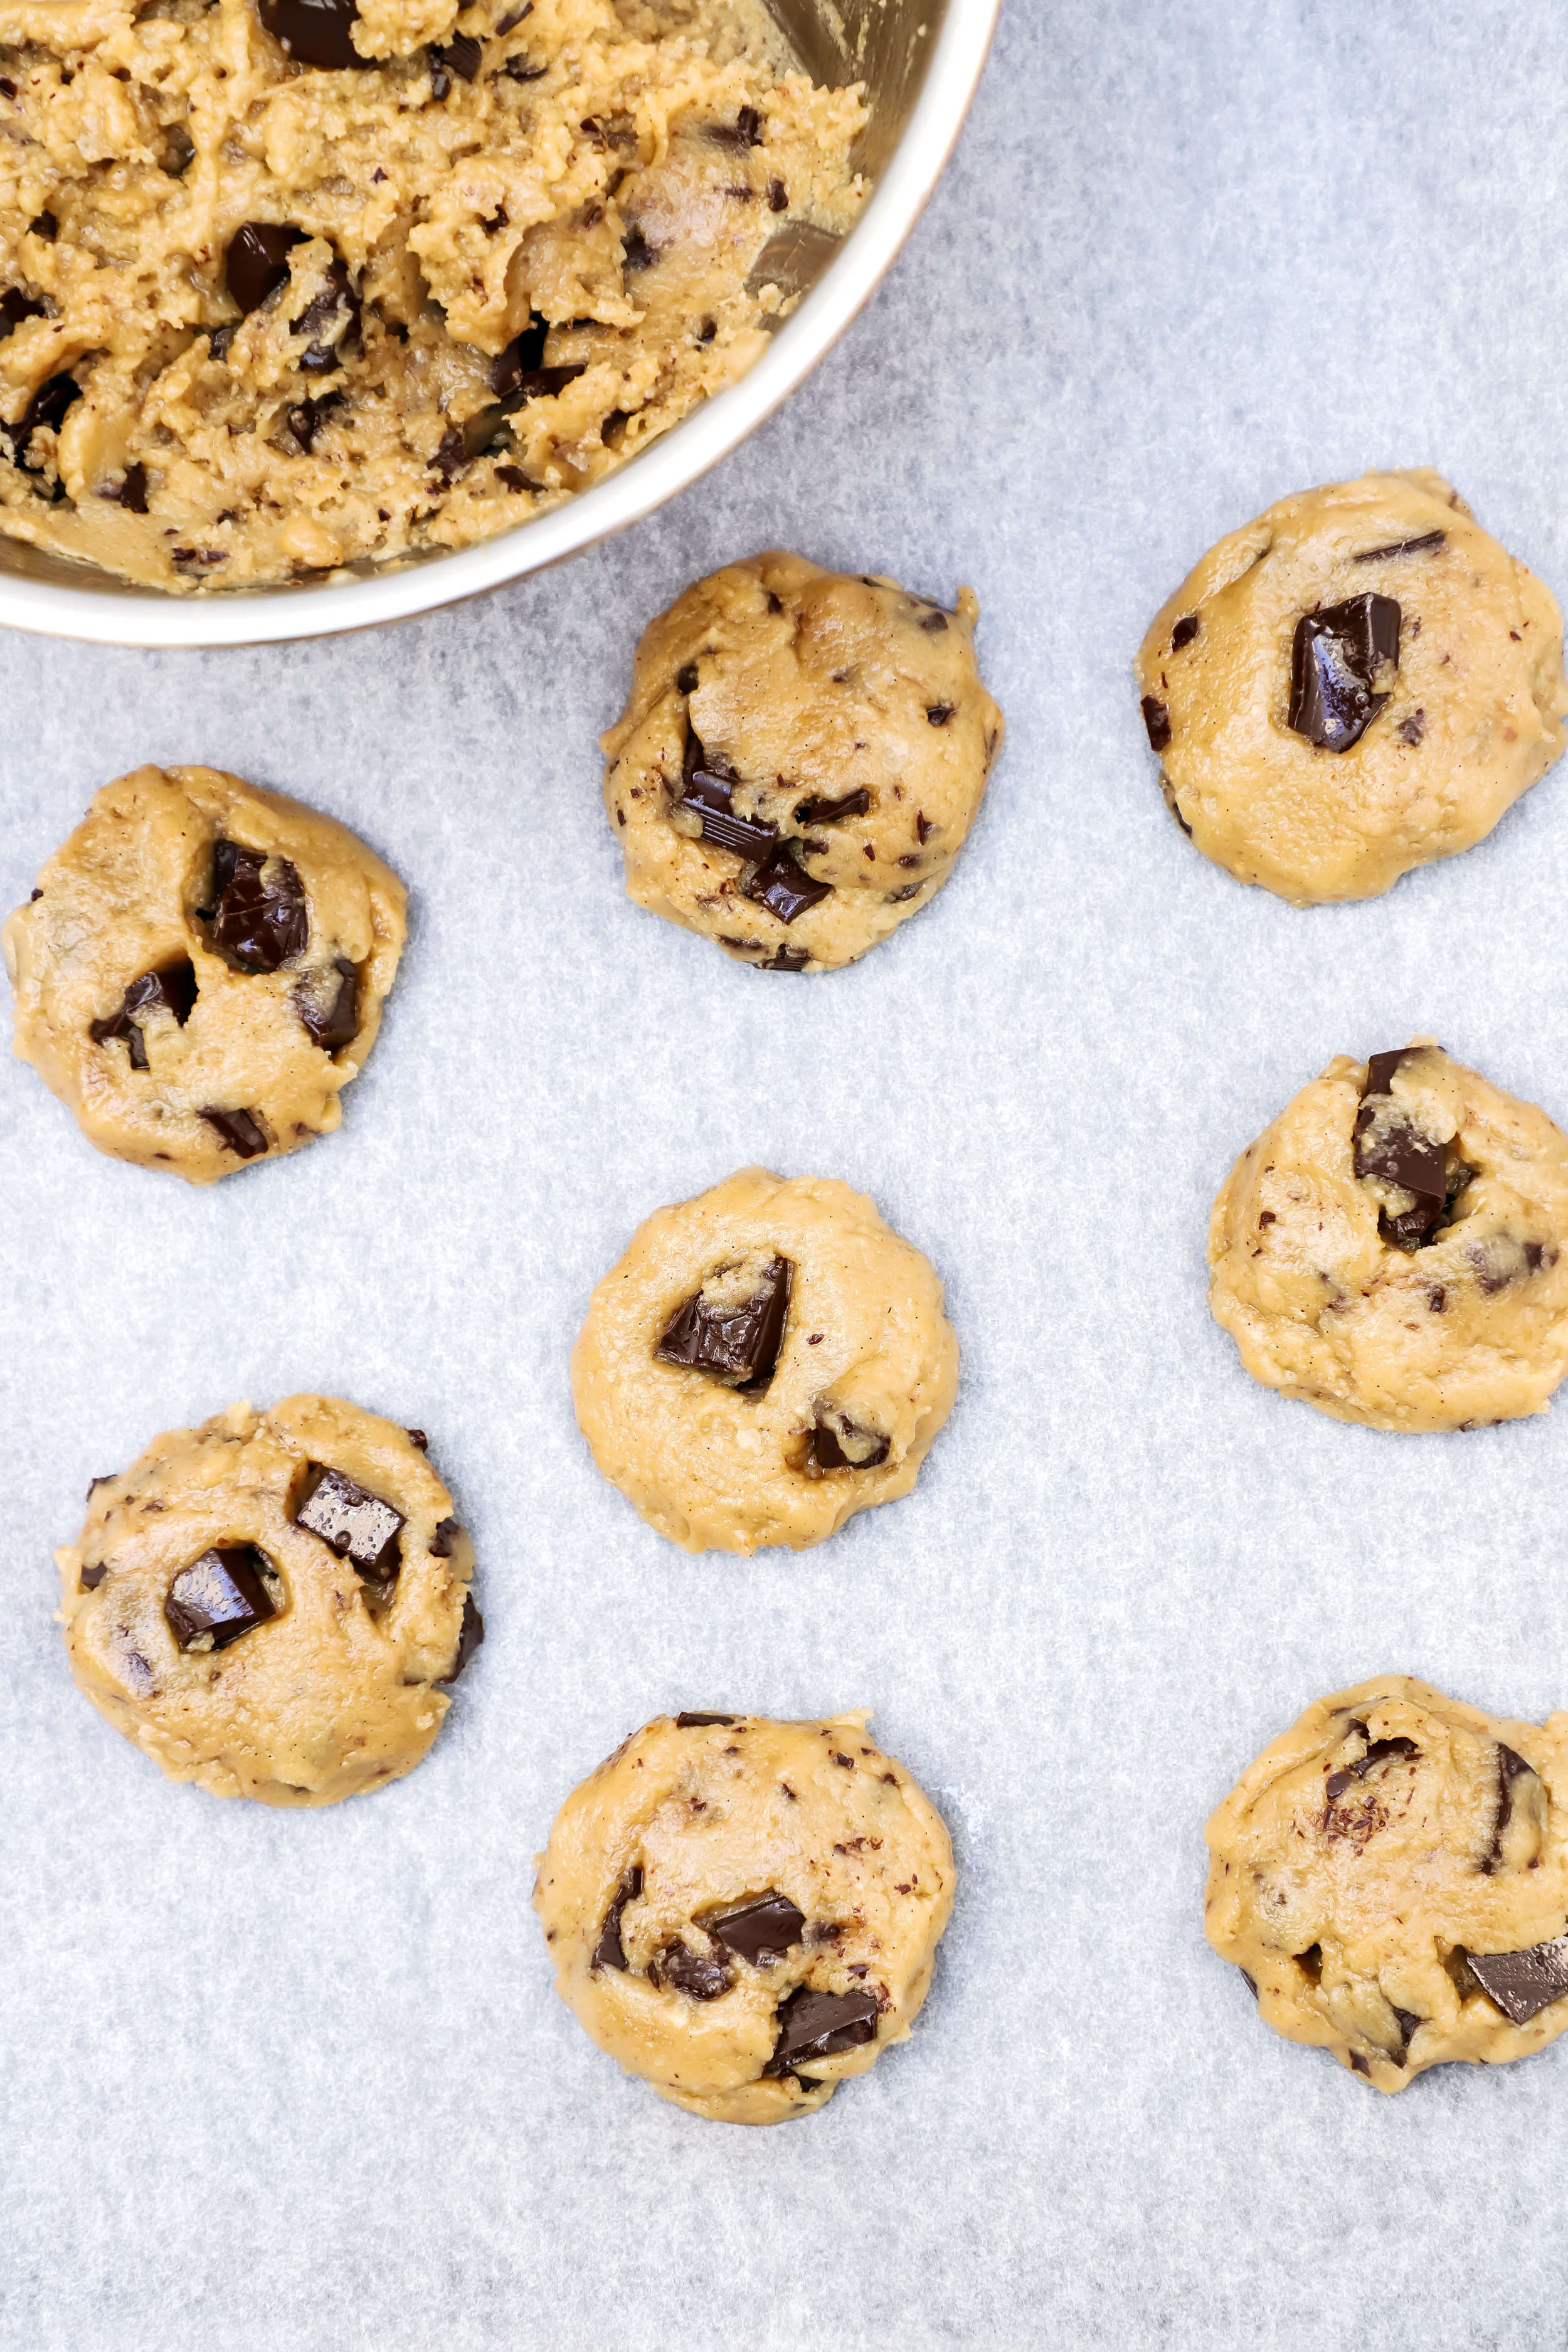 vegan and gluten-free chocolate chip cookie dough scooped out and placed on a baking sheet